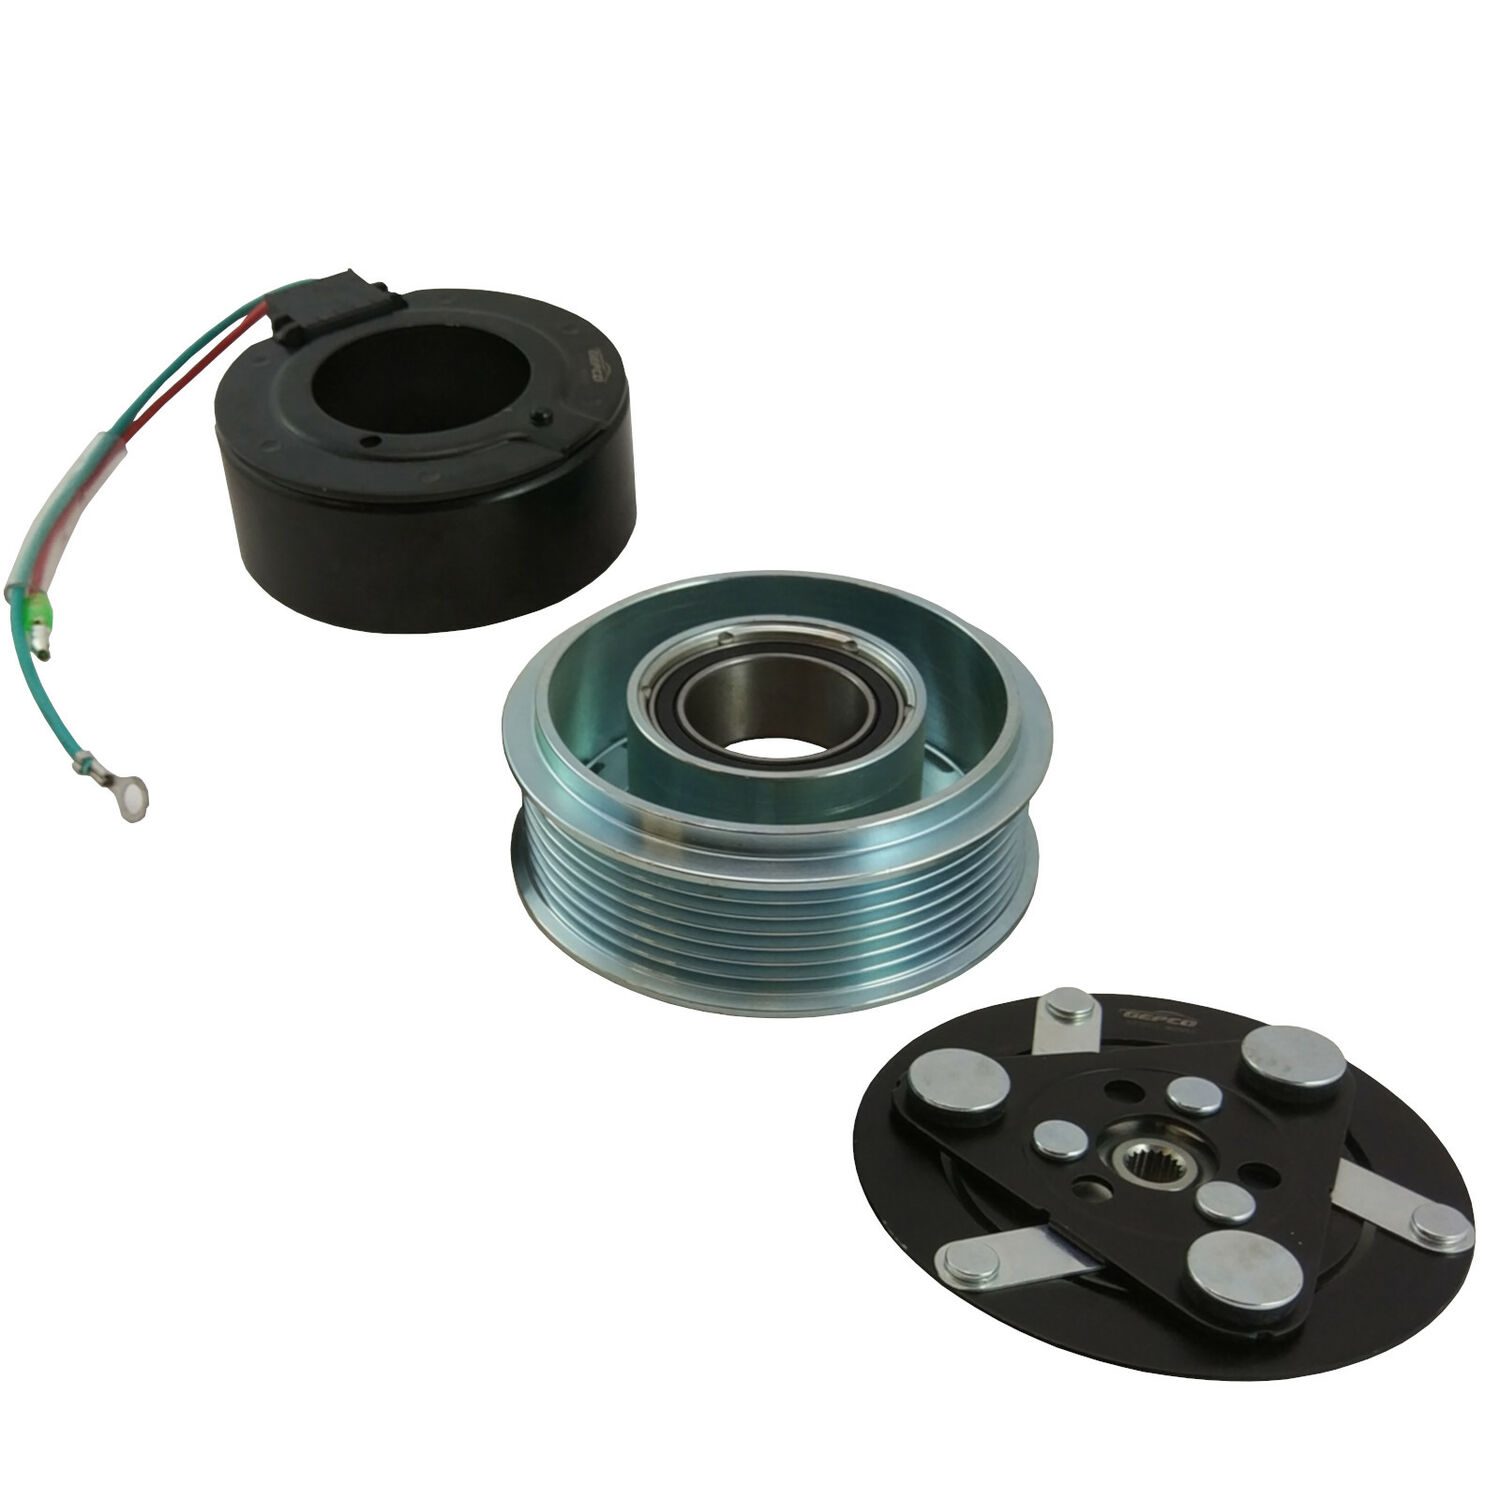 AC Compressor Magnetic Clutch Pulley Magnetic Coil Honda Accord CL Cr-V Rd